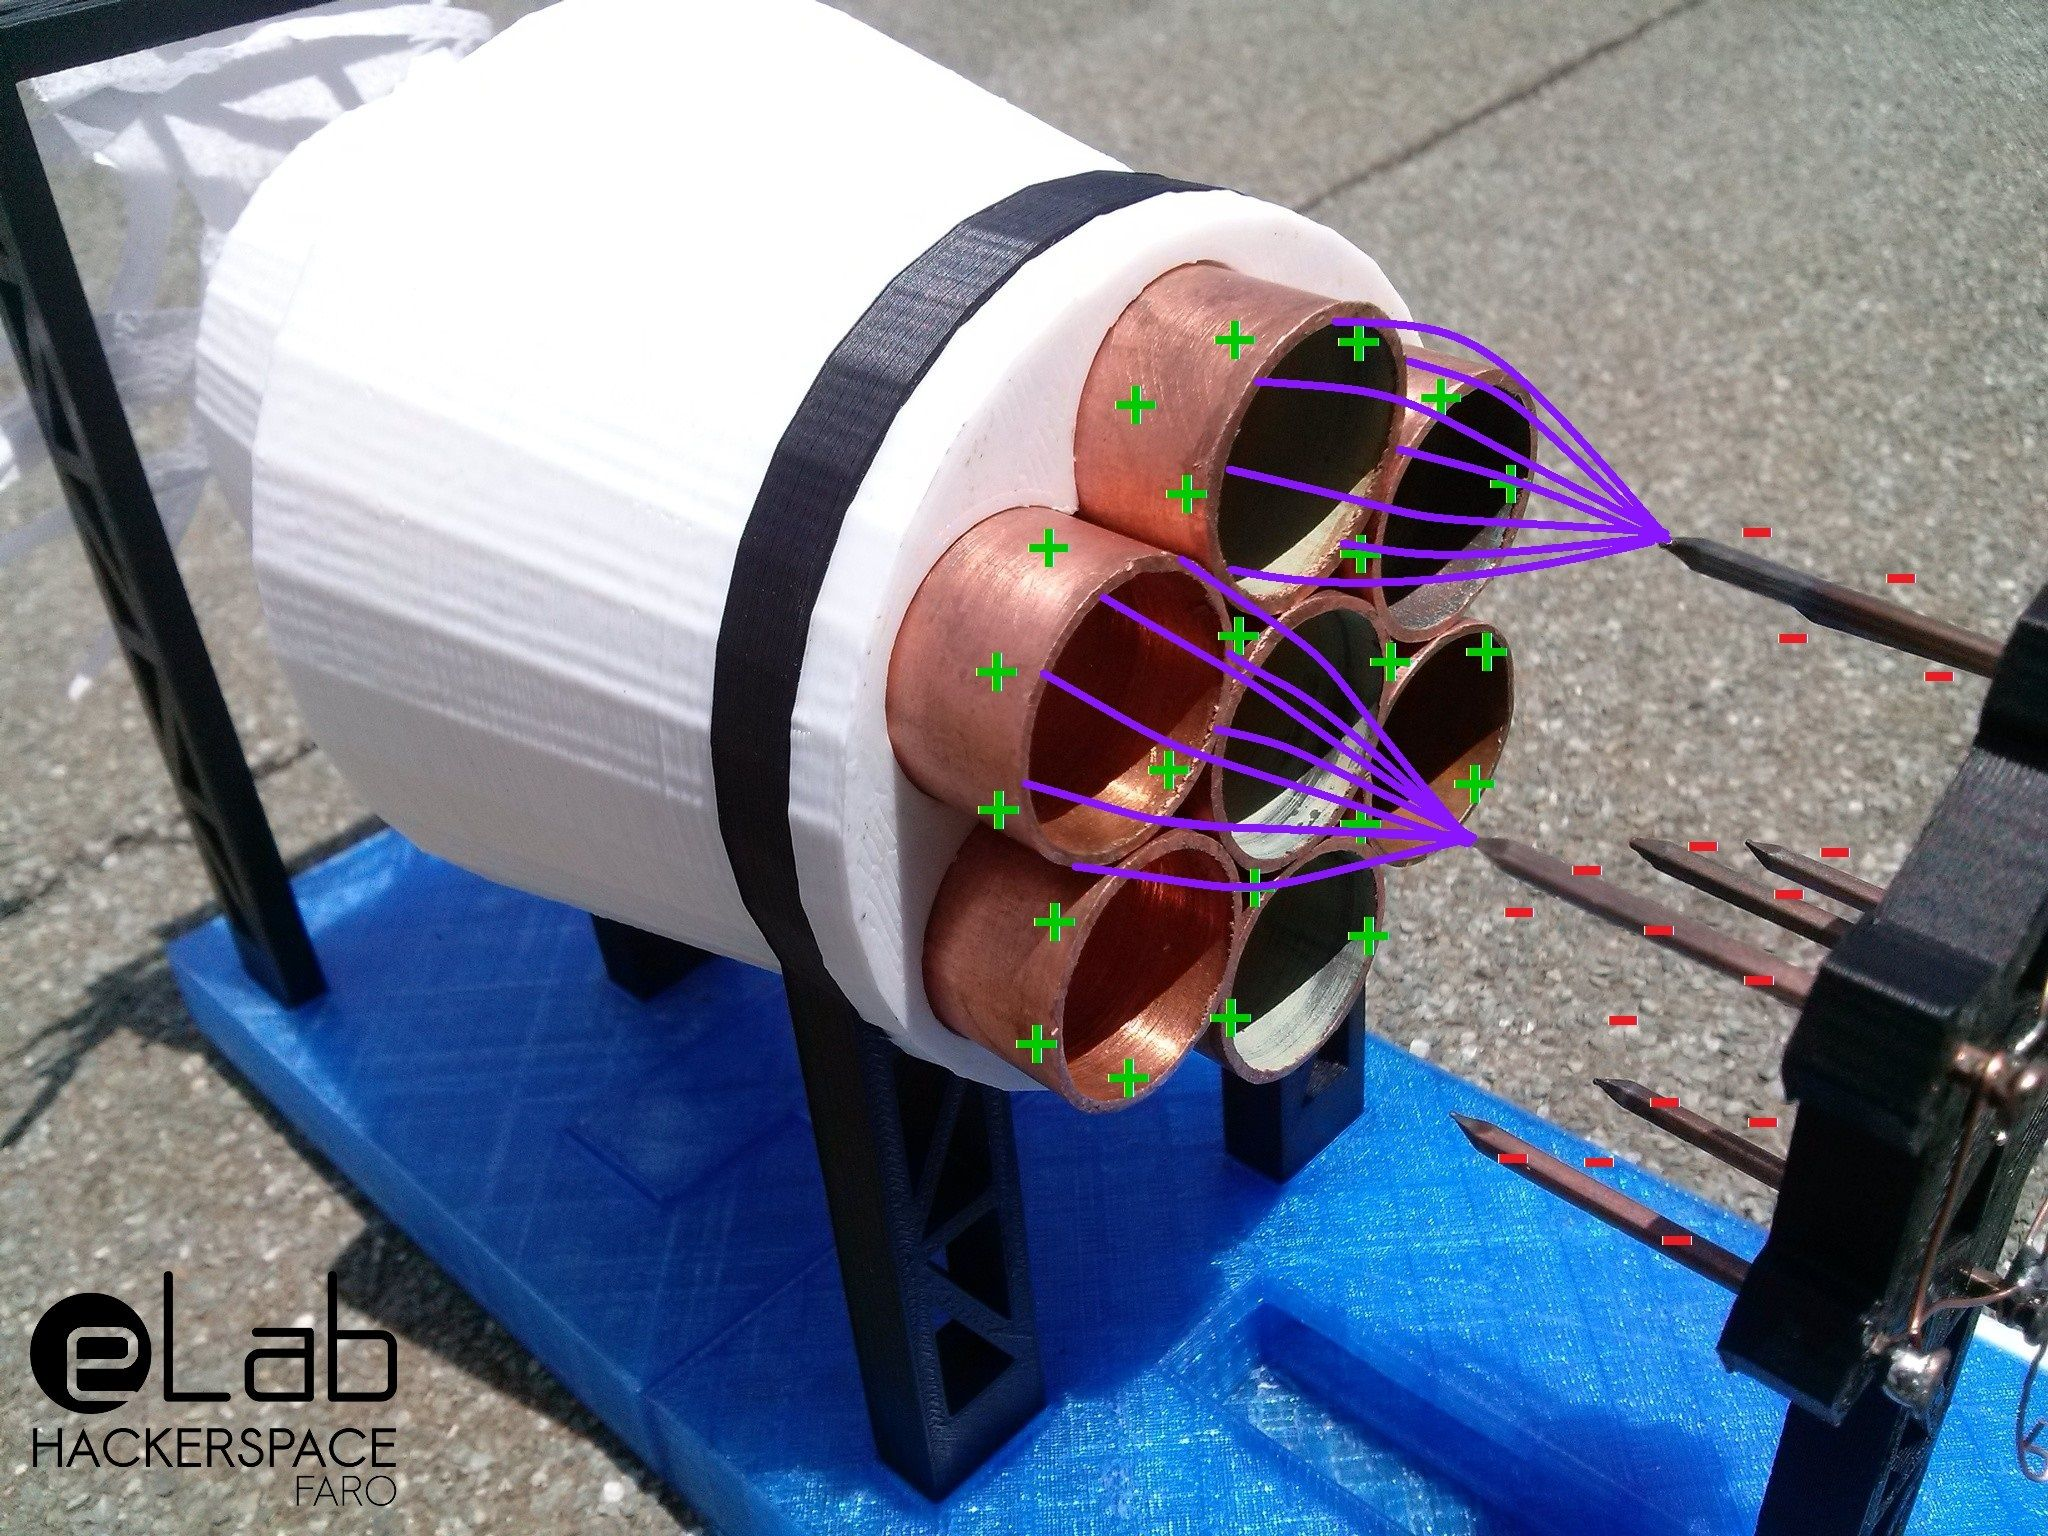 Pin by Chris Bailey on Cool Tech | Ion thruster, Diy ...